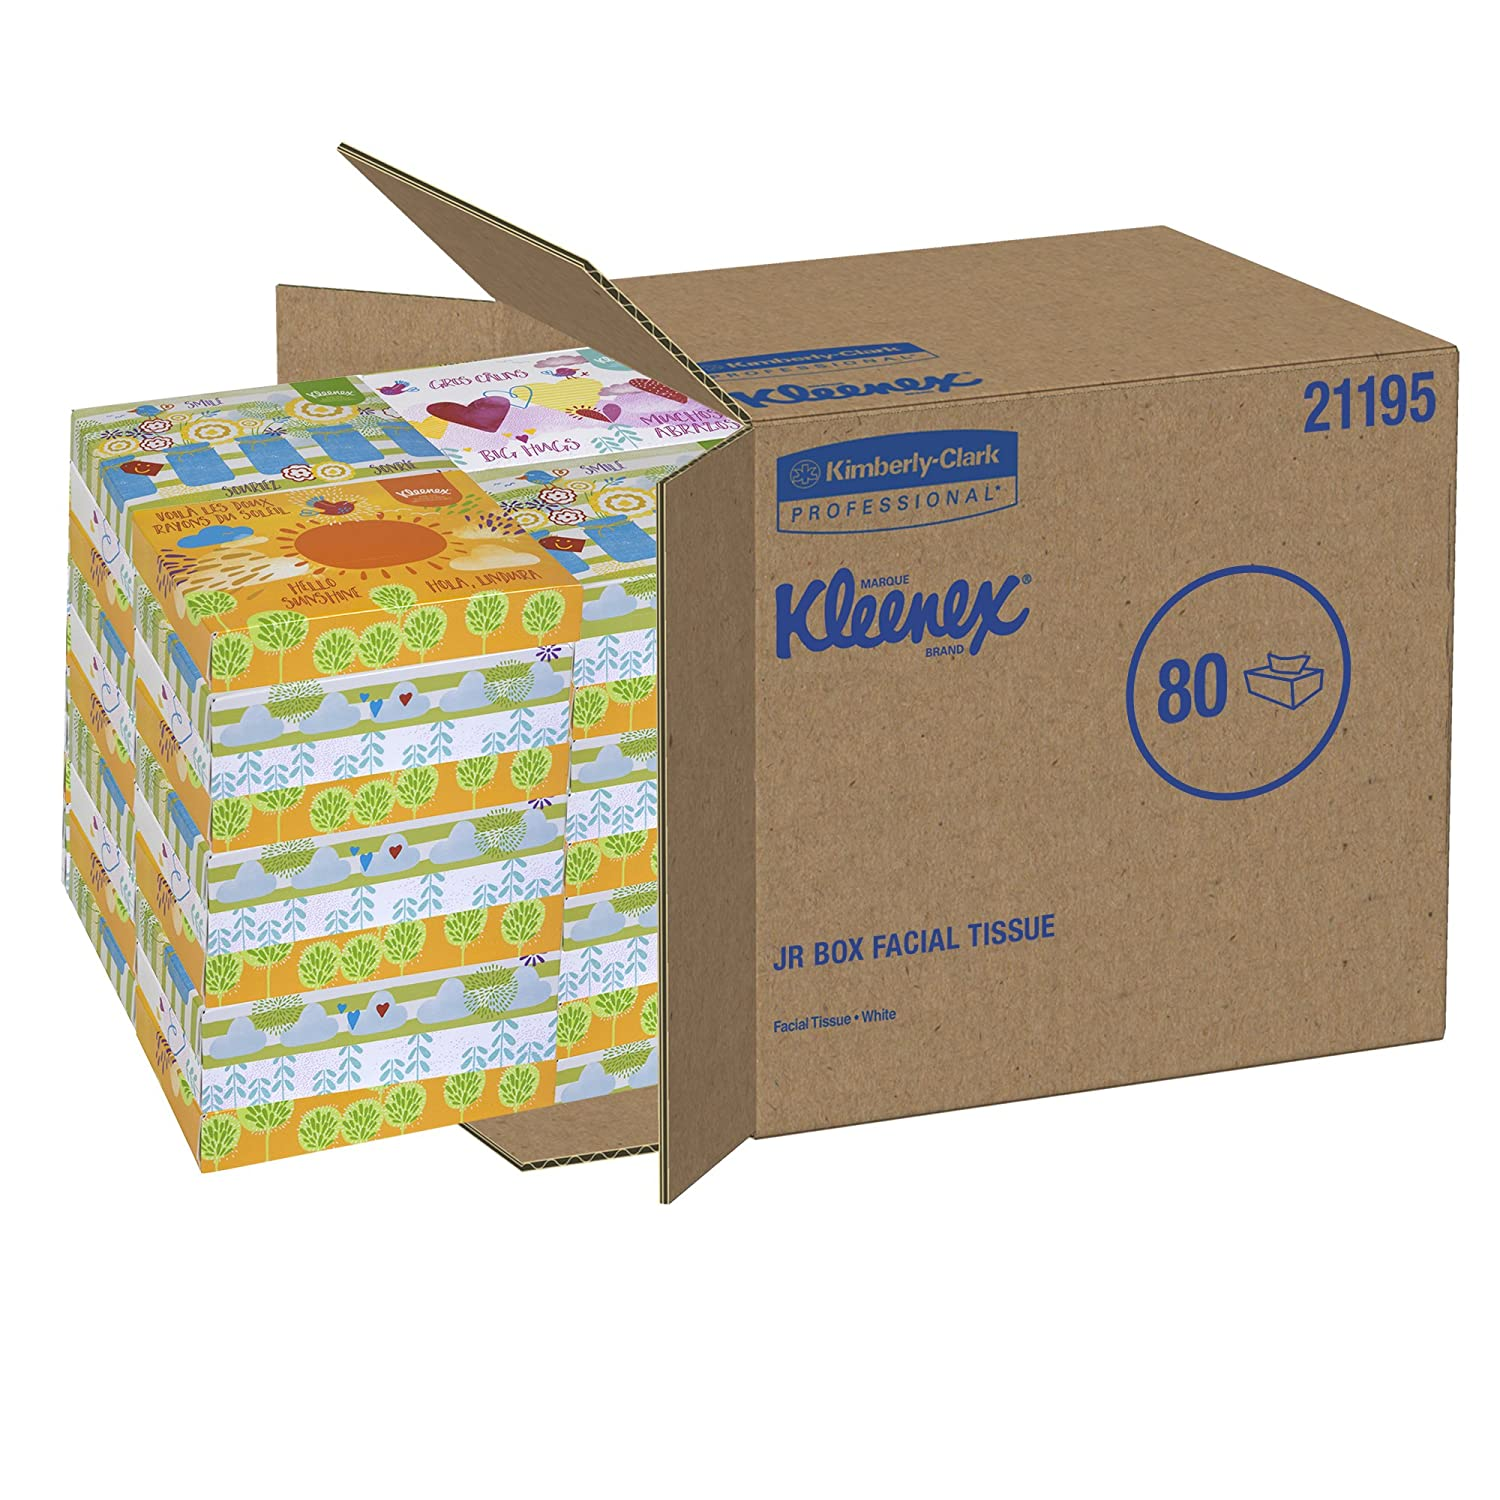 Kleenex Professional Facial Tissue for Business (21195), Flat Tissue Boxes,  80 Junior Boxes / Case, 40 Tissues / Box: Kleenex Professional: Amazon.com:  ...